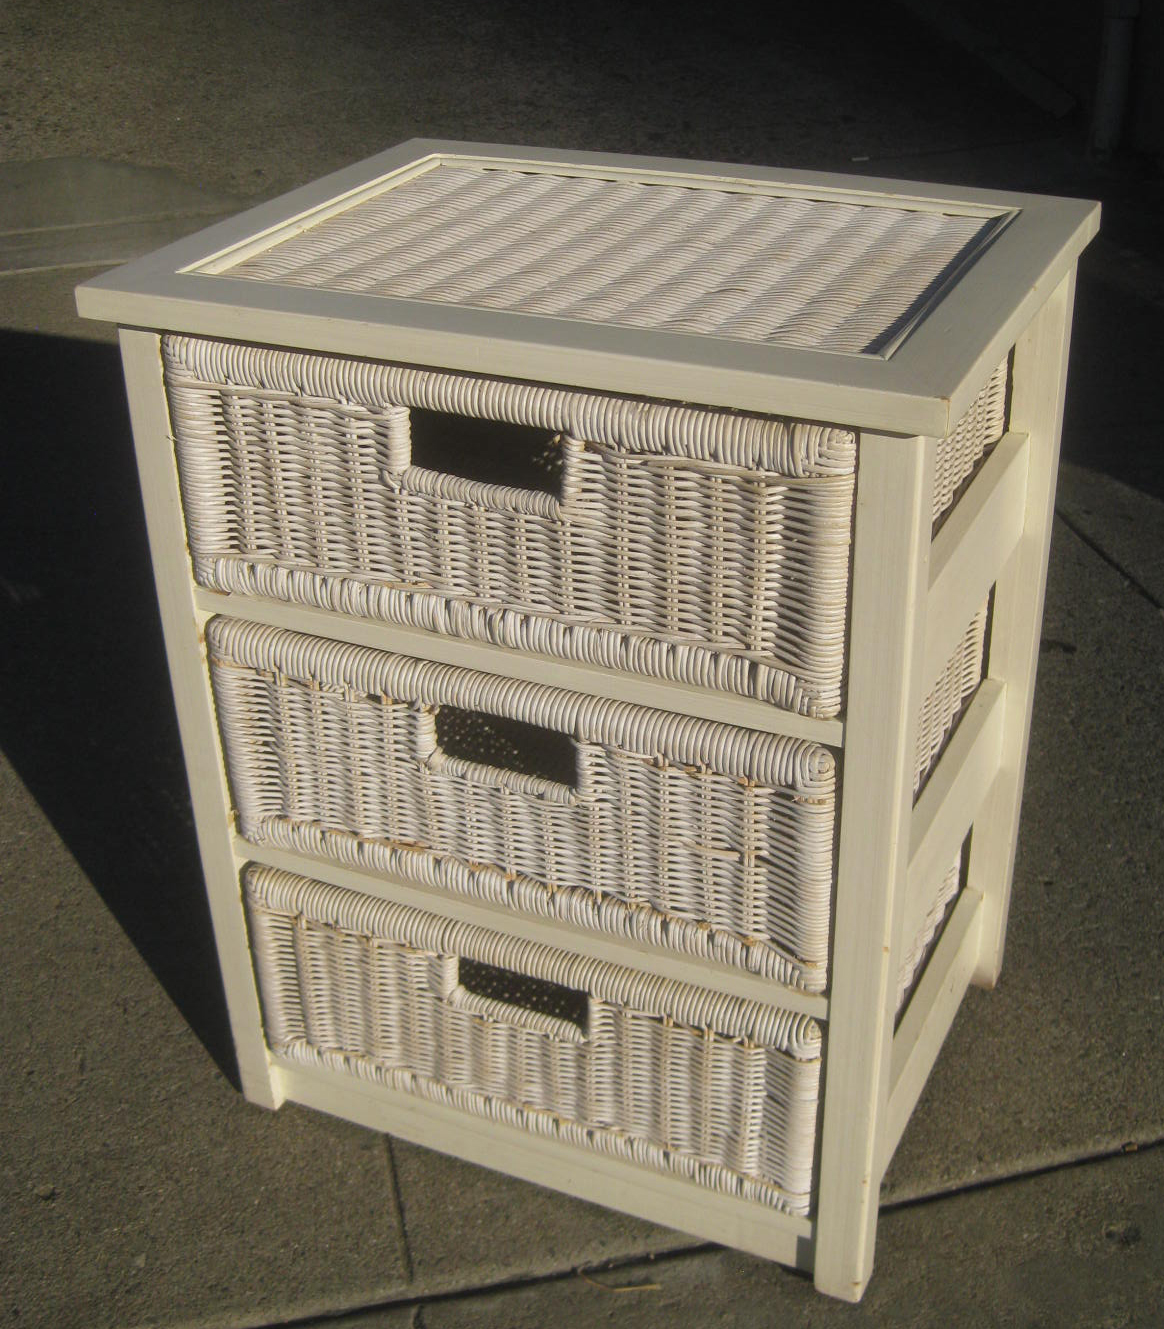 UHURU FURNITURE & COLLECTIBLES: SOLD - Small Basket Cabinet - $45